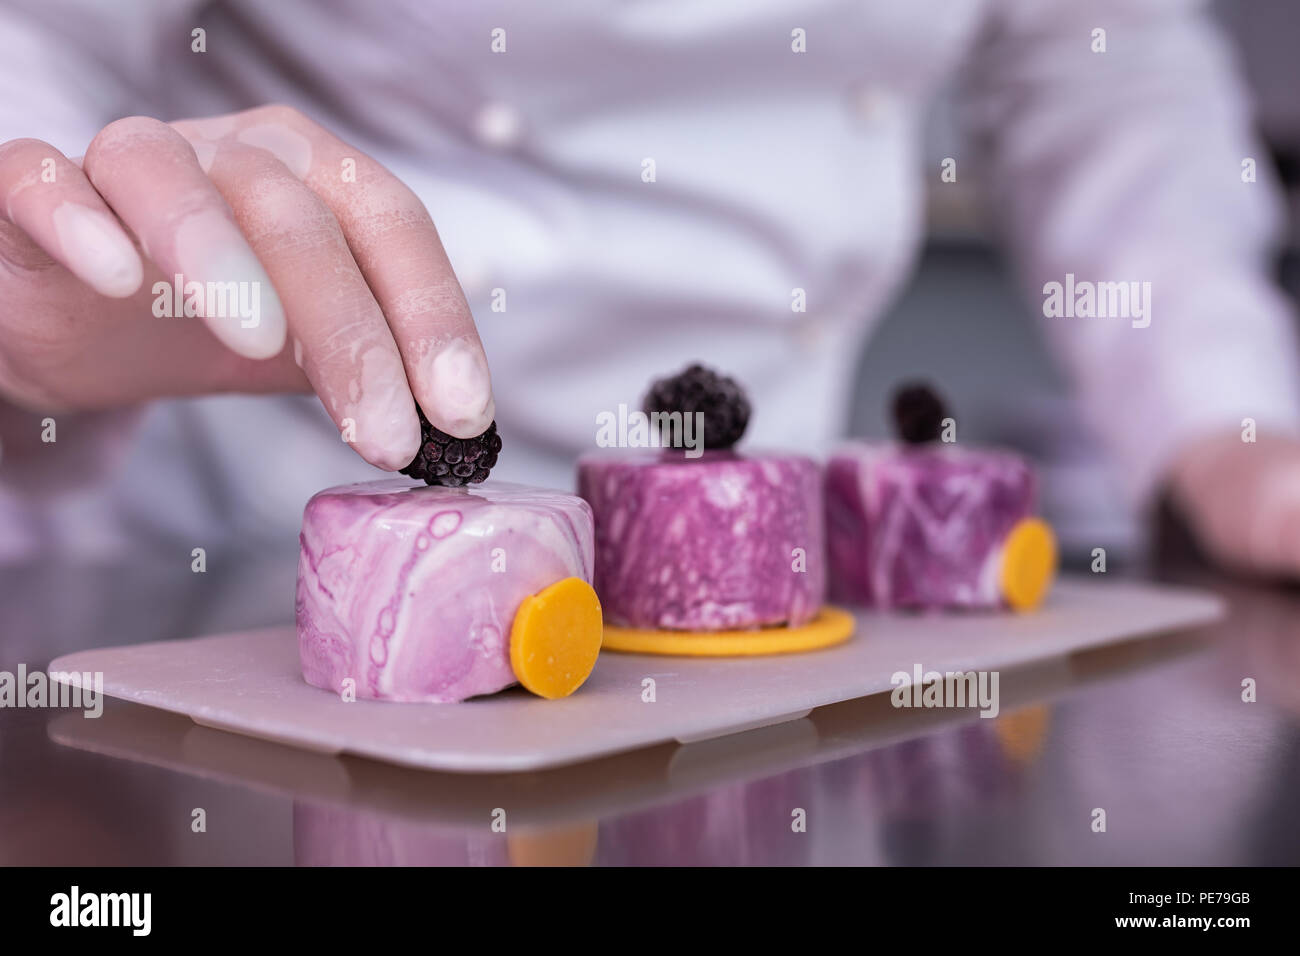 Professional confectioner giving master class on decorating desserts - Stock Image